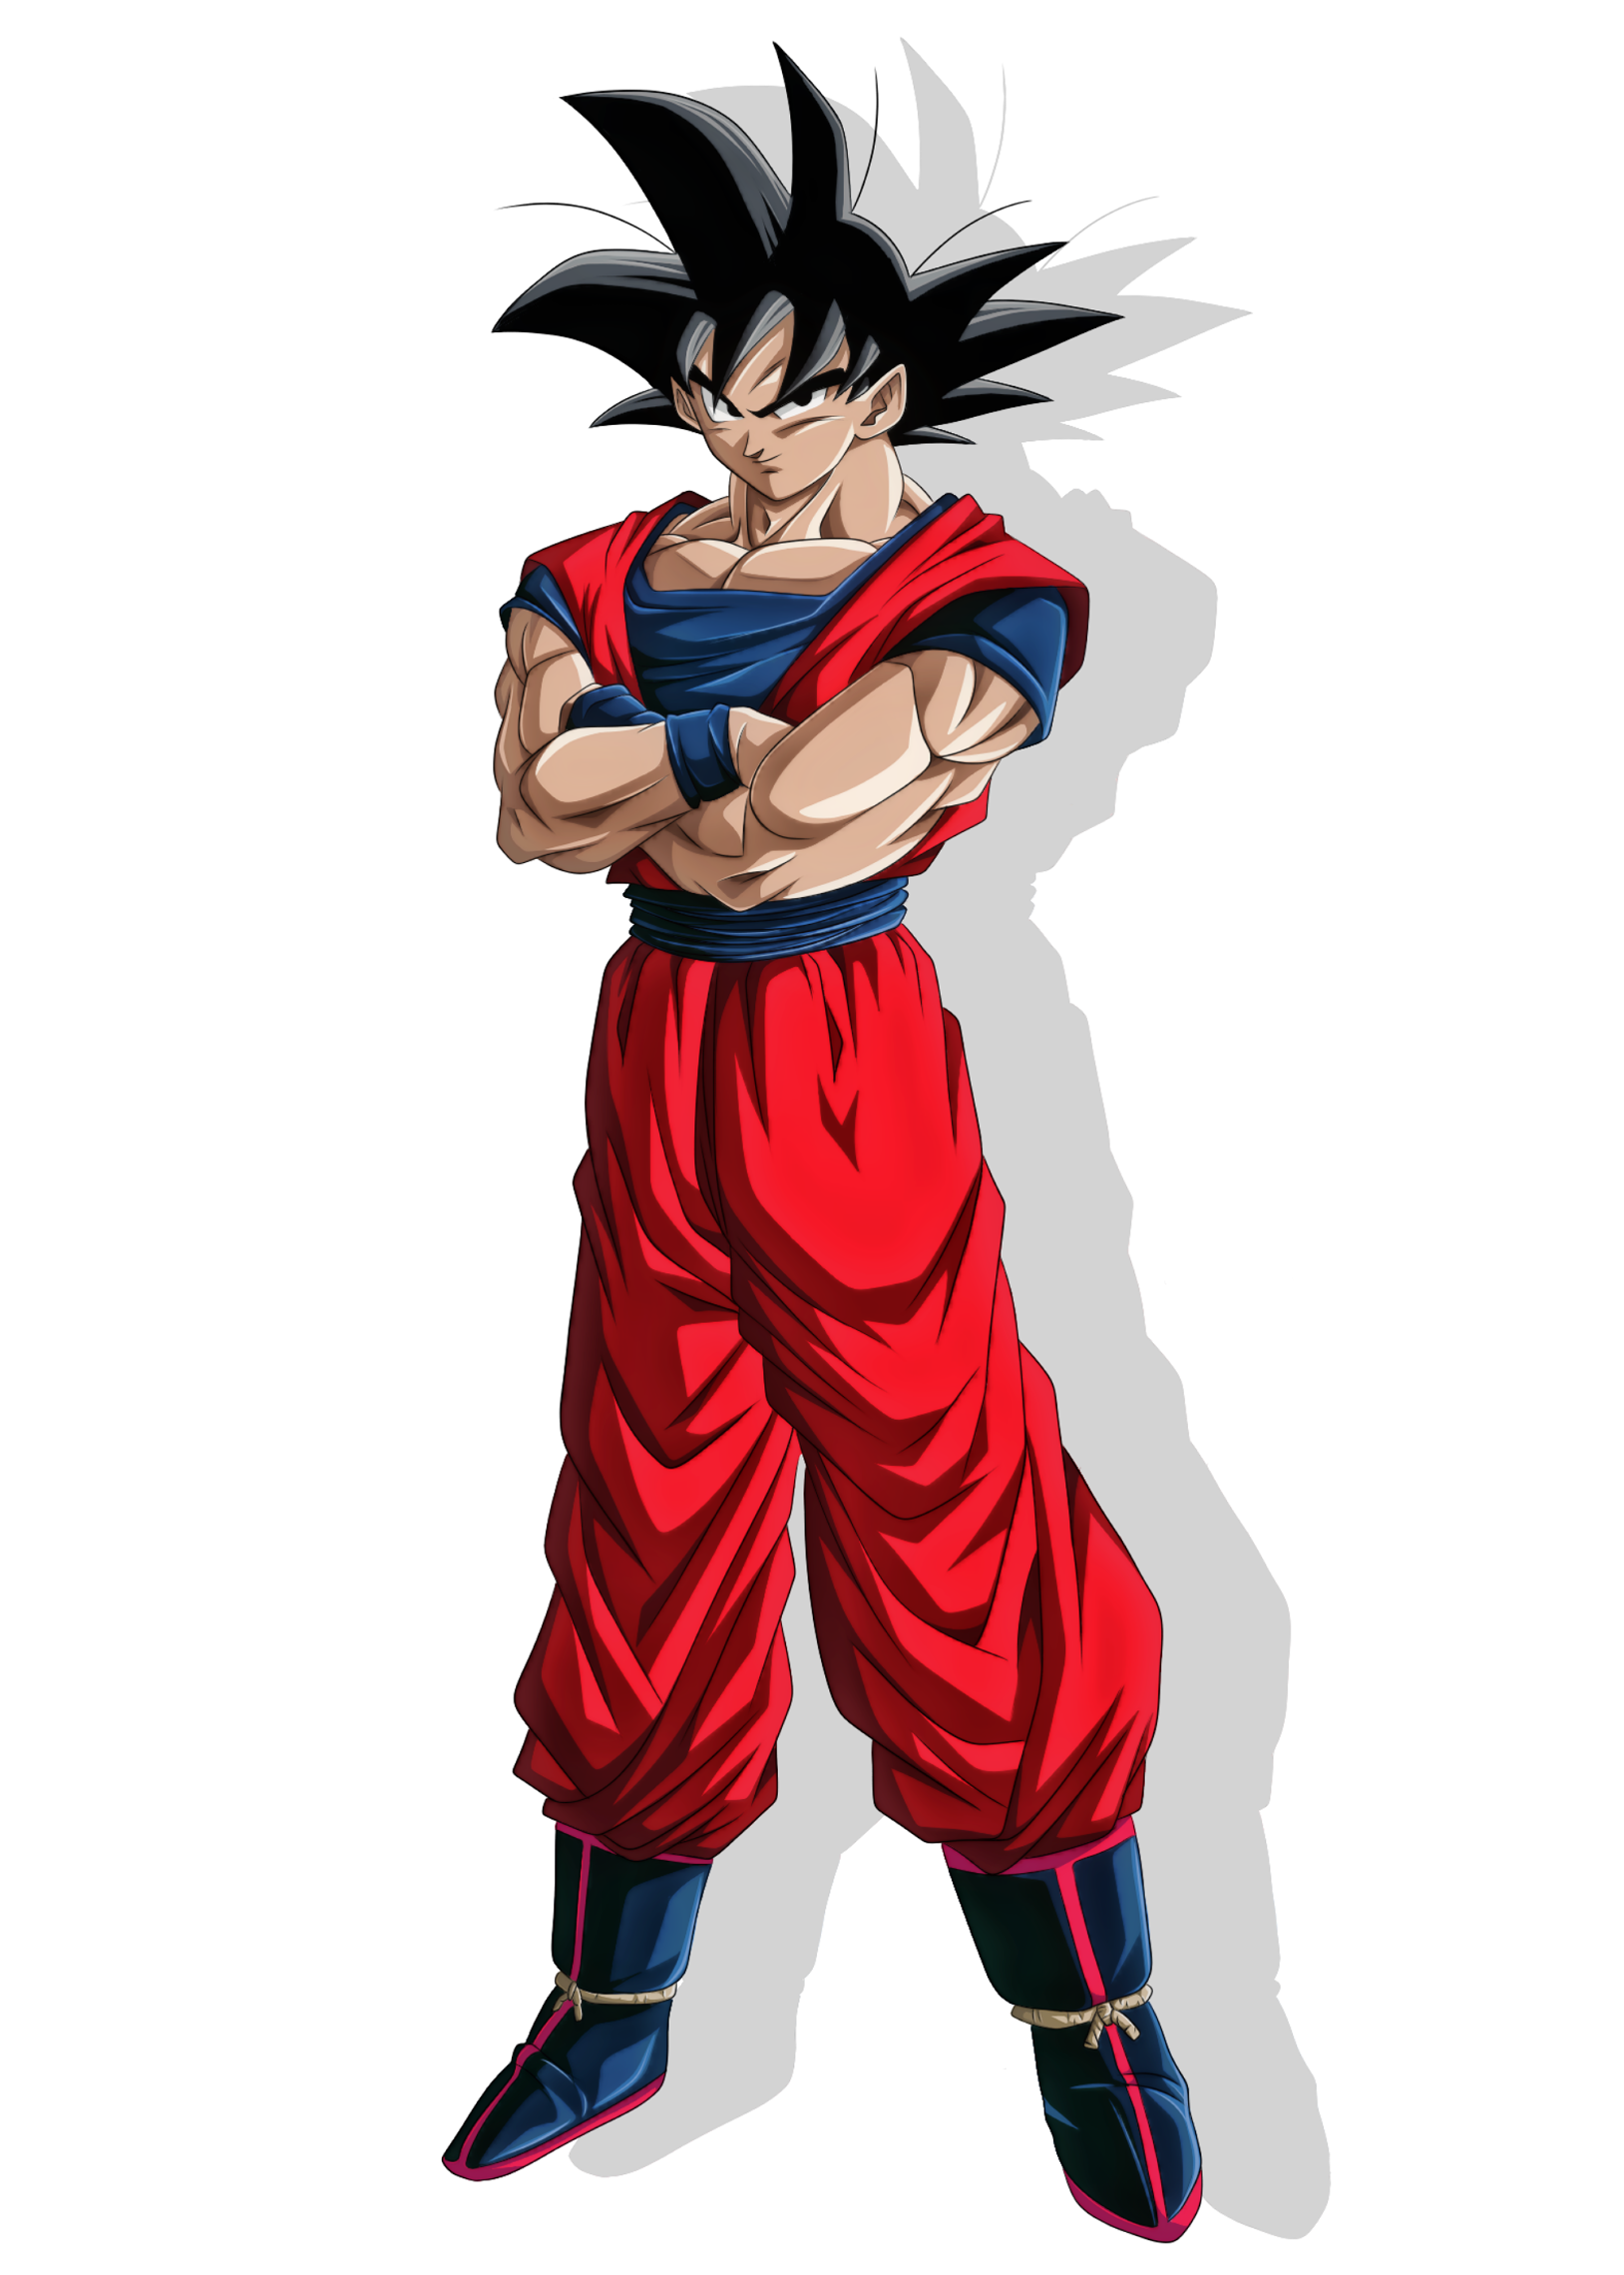 Goku Render By Dradrek By Dradek On Deviantart In 2020 Dragon Ball Super Manga Anime Dragon Ball Super Dragon Ball Painting